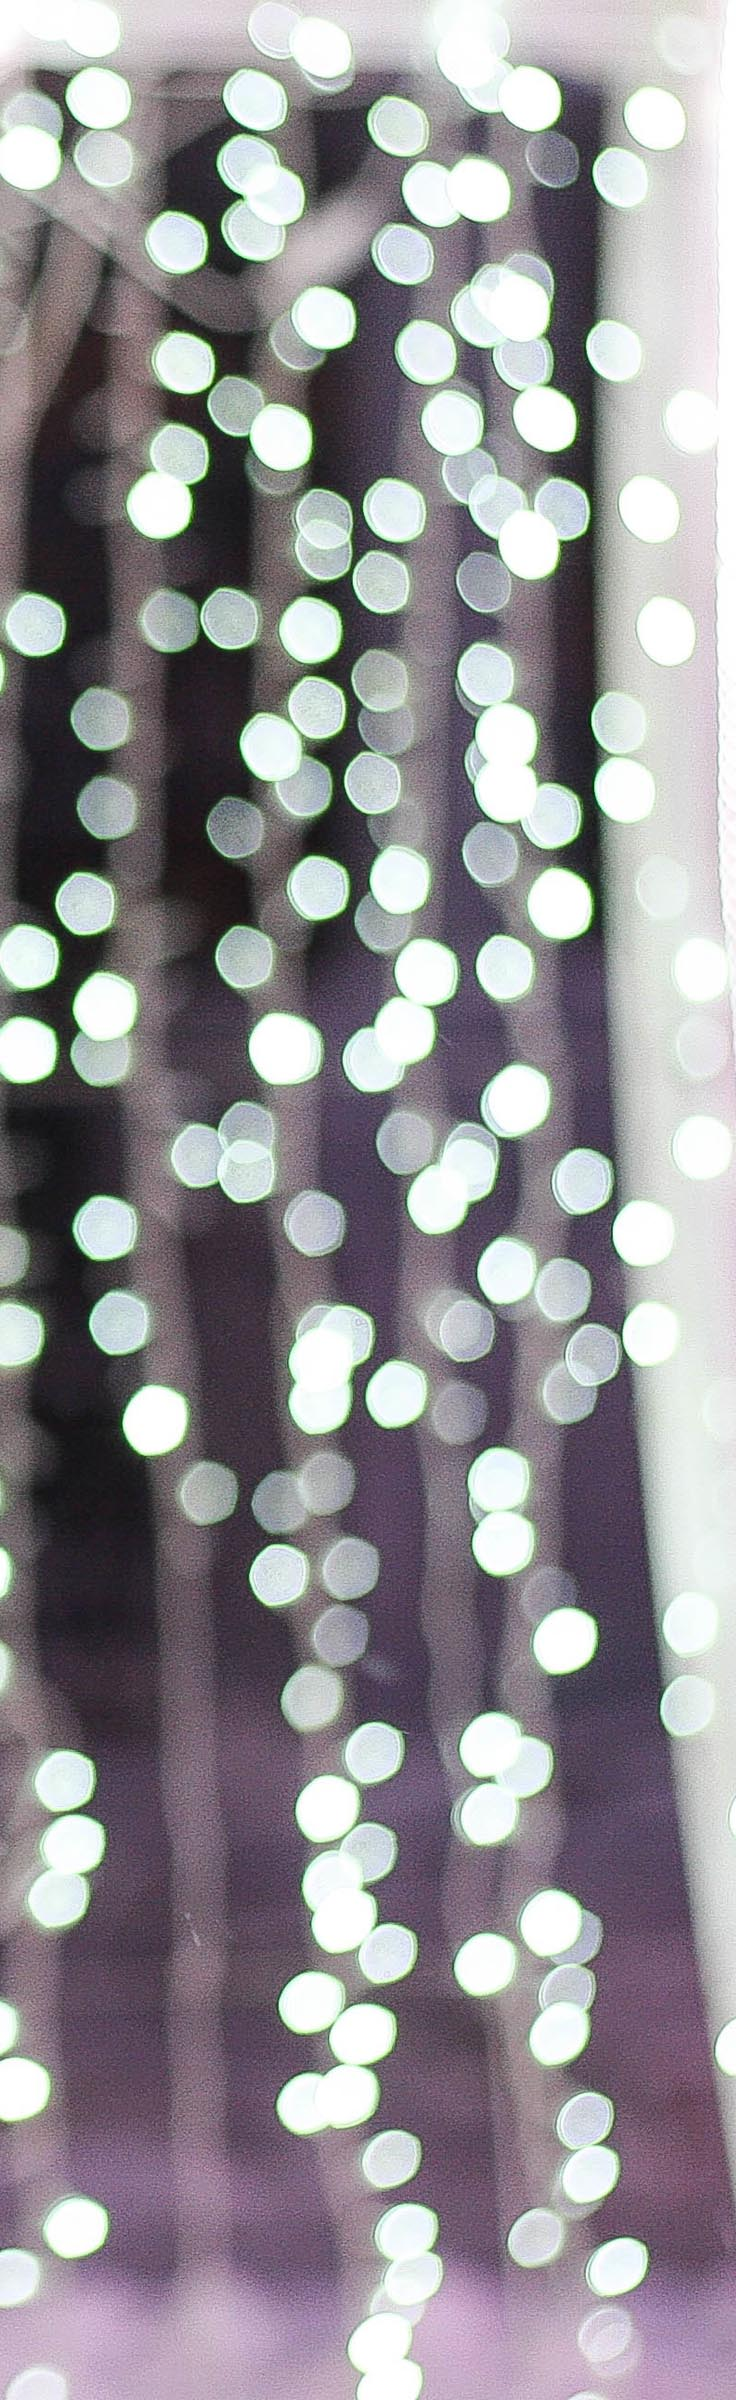 Lights brighten up any winter day, not just the holidays